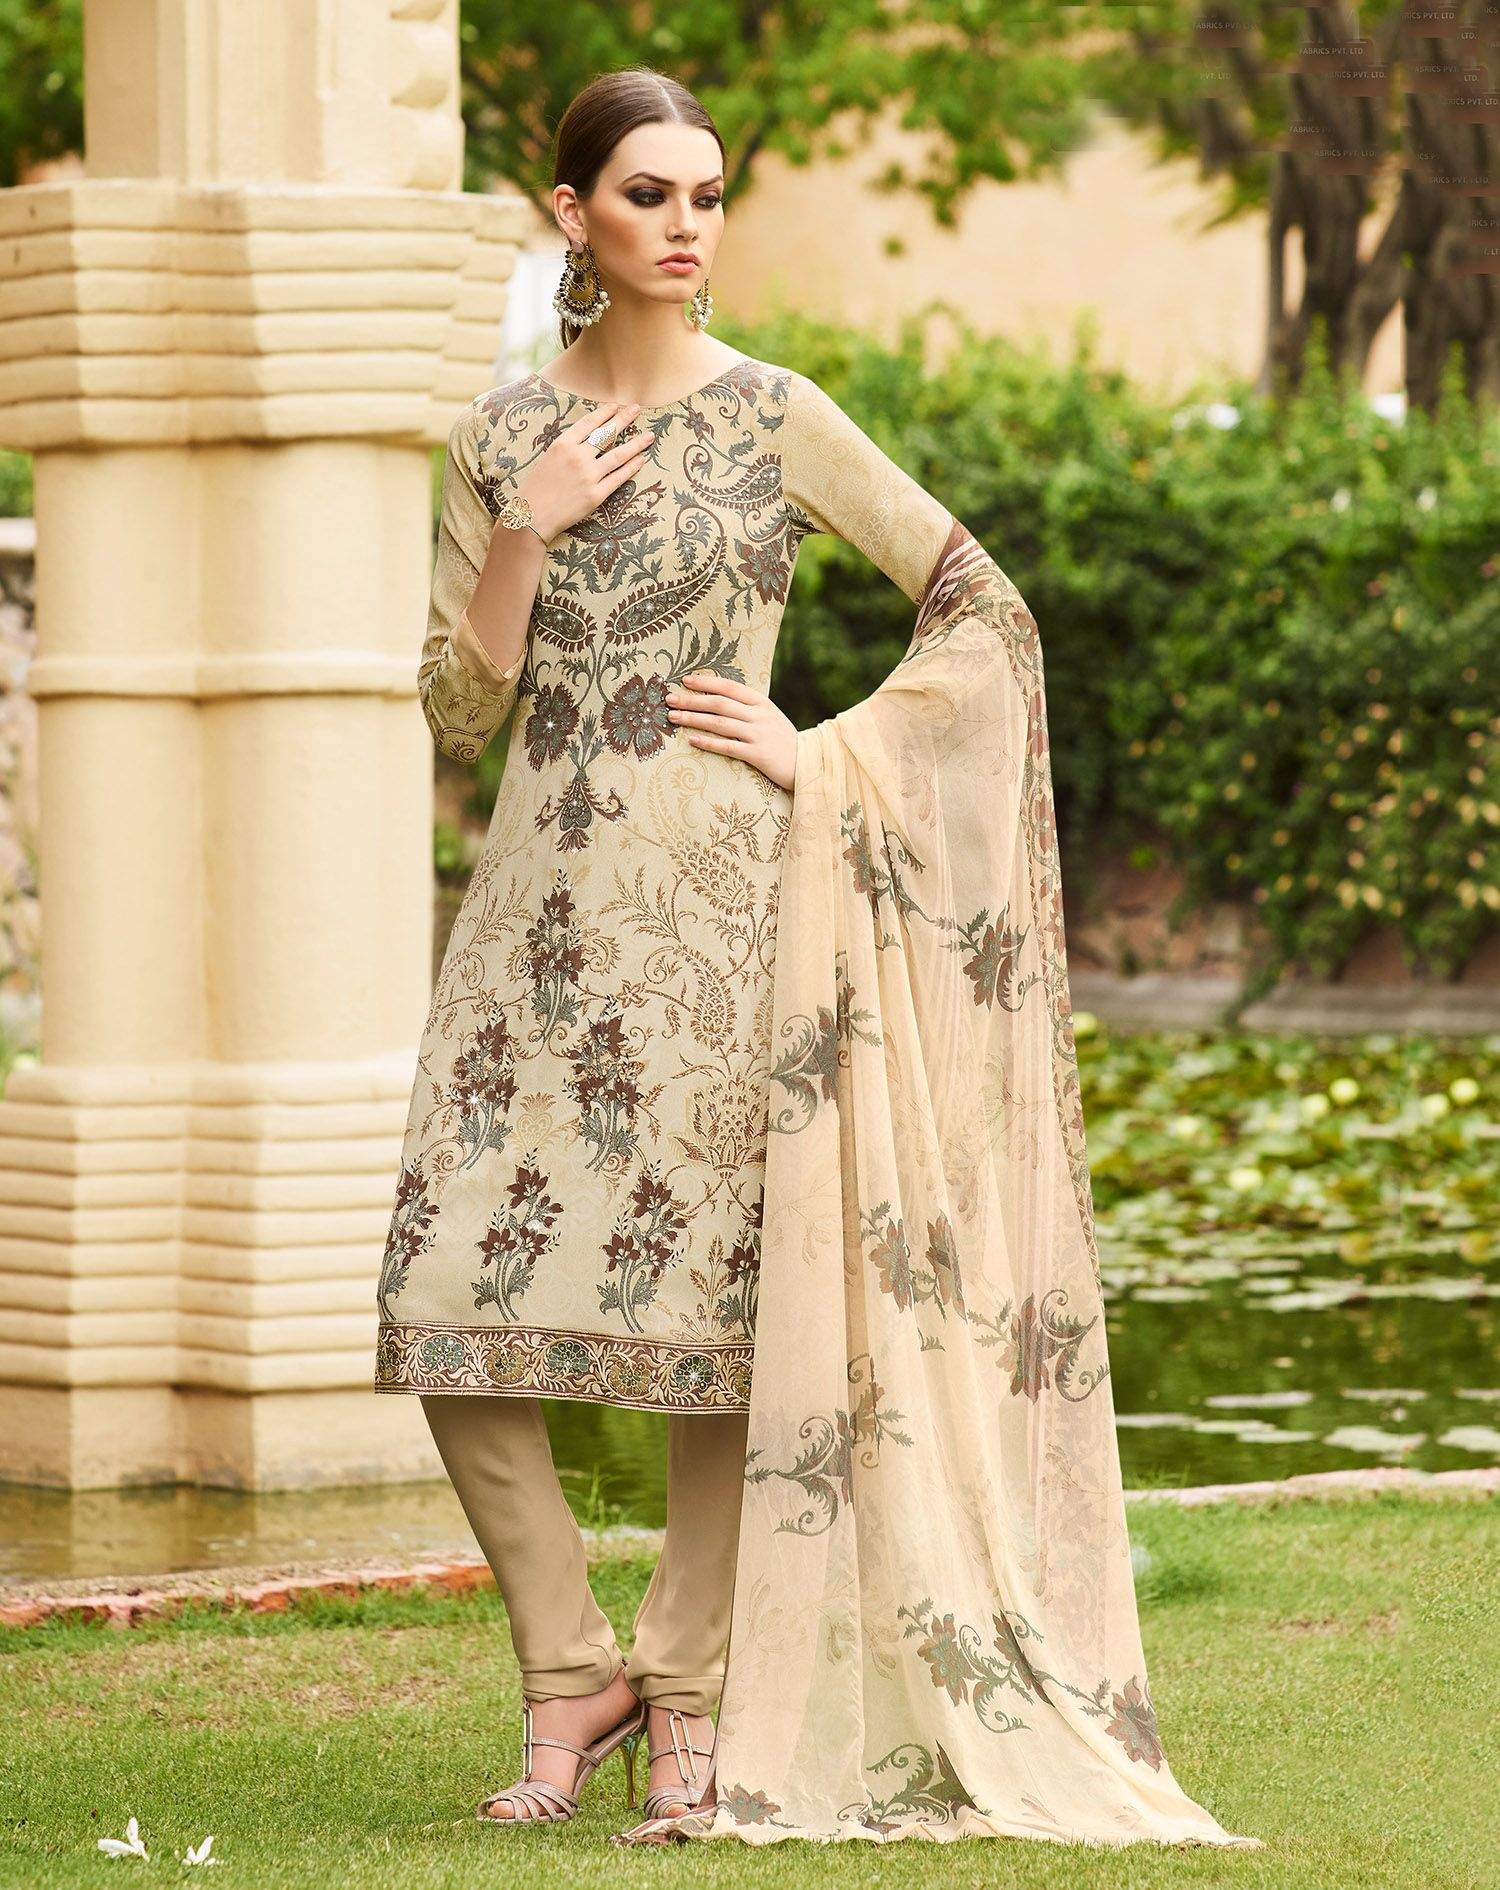 Buy Top: Beige; Bottom: Beige; Dupatta: Beige Beige French Crepe Unstitched Suit for women Online  At Flash Sale | Styletag, India